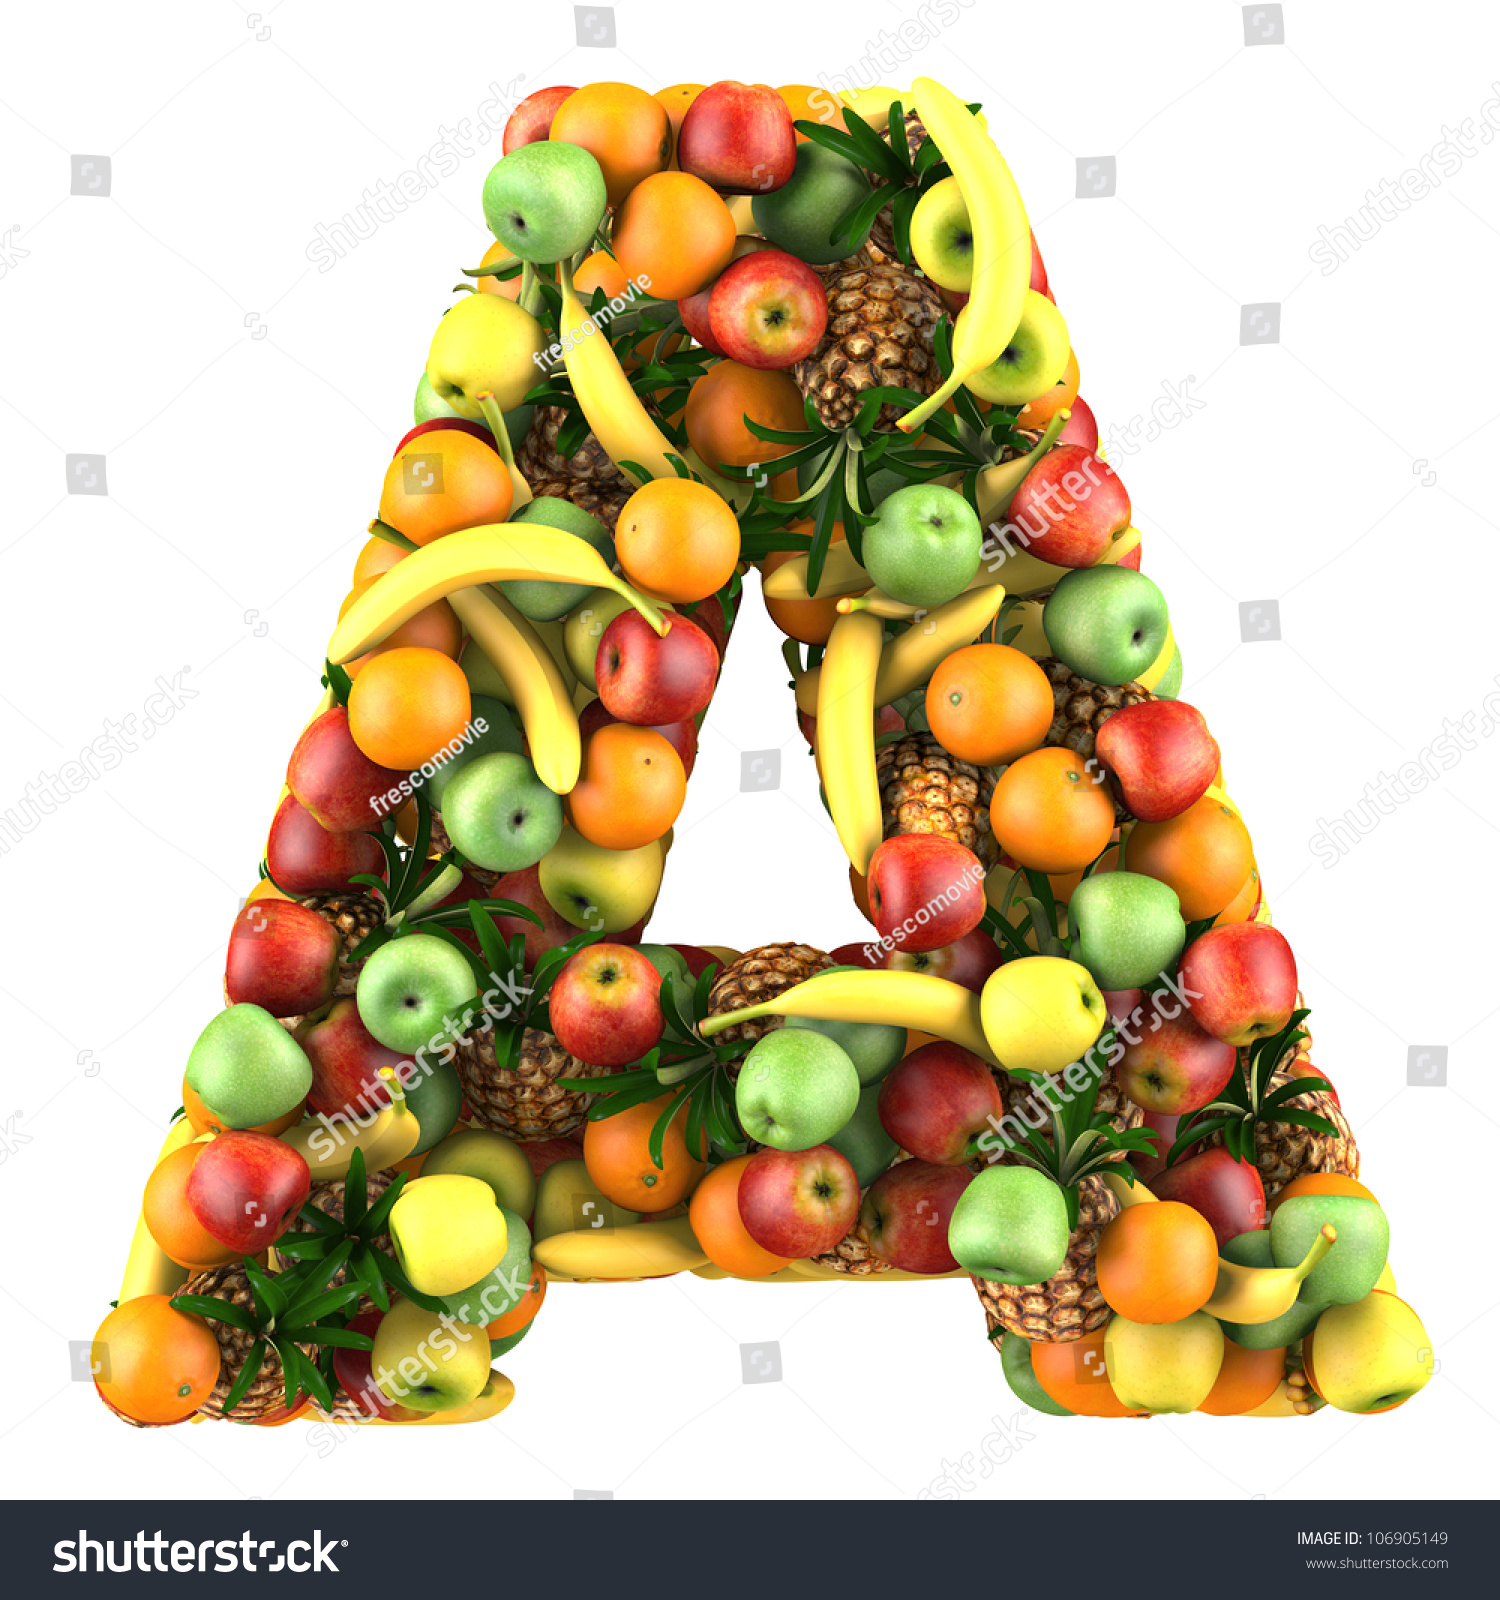 Fruit With The Letter I Pictures To Pin On Pinterest